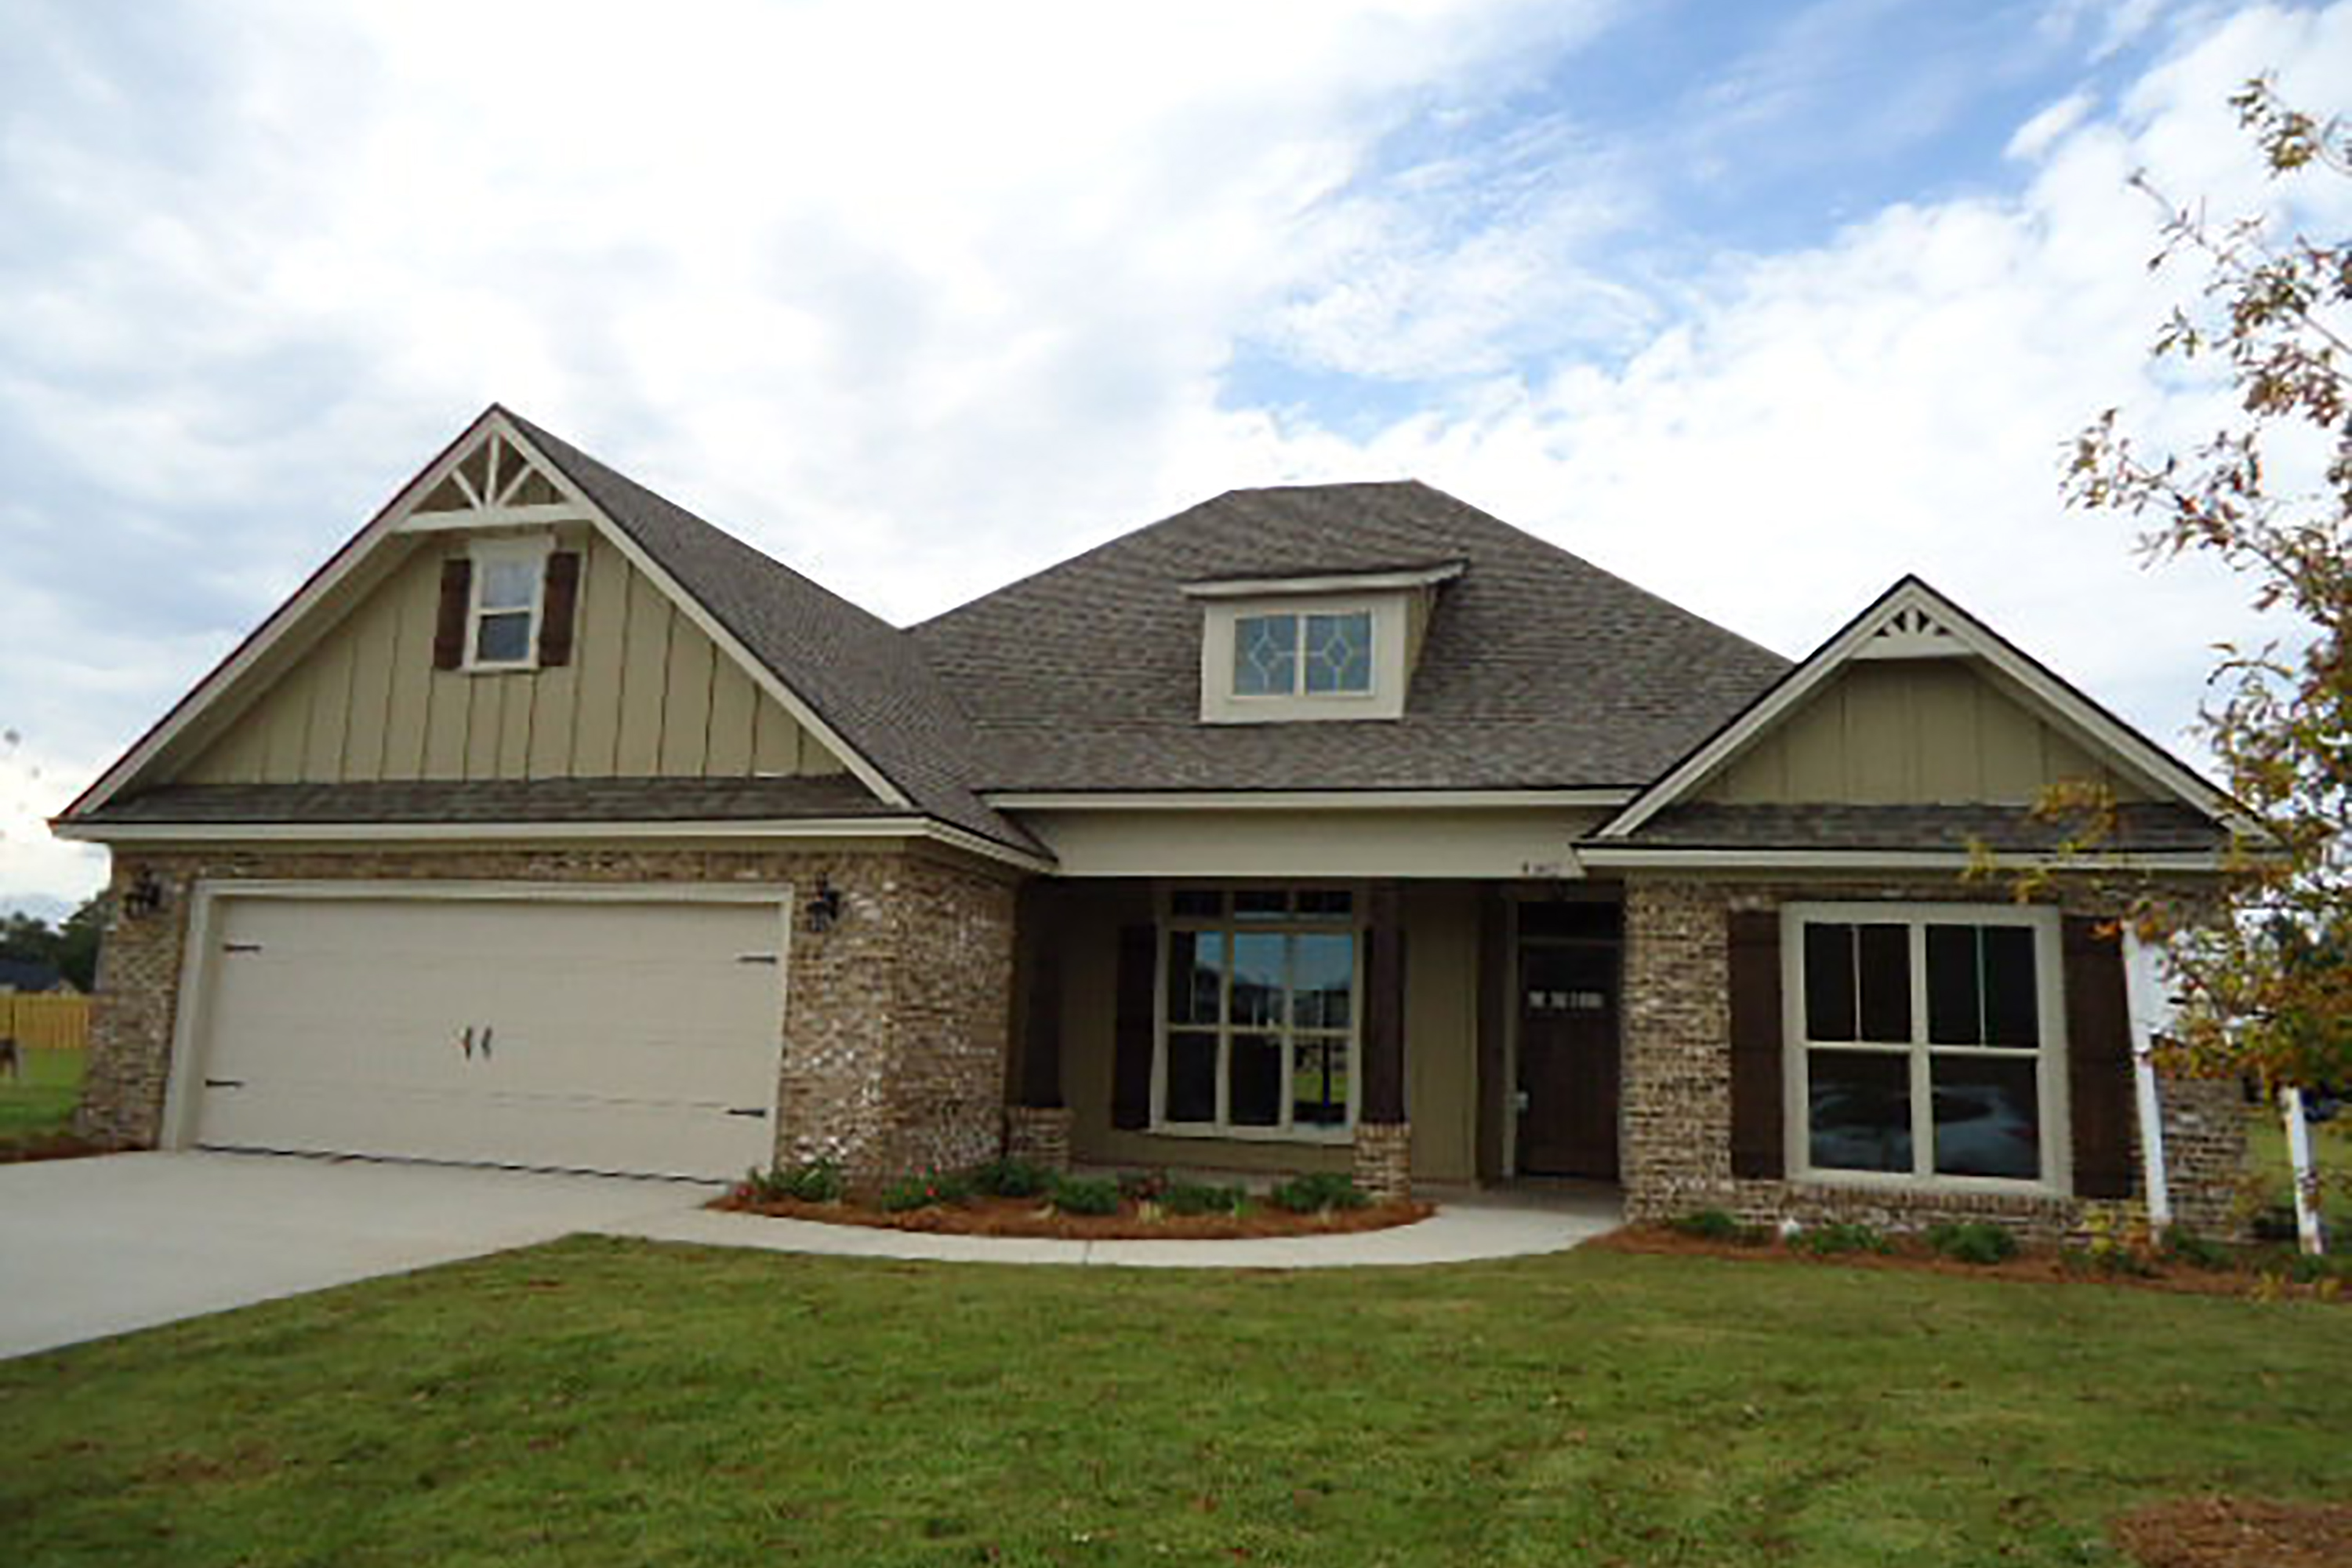 Residential firm foundation custom construction llc for Custom home builders valdosta ga